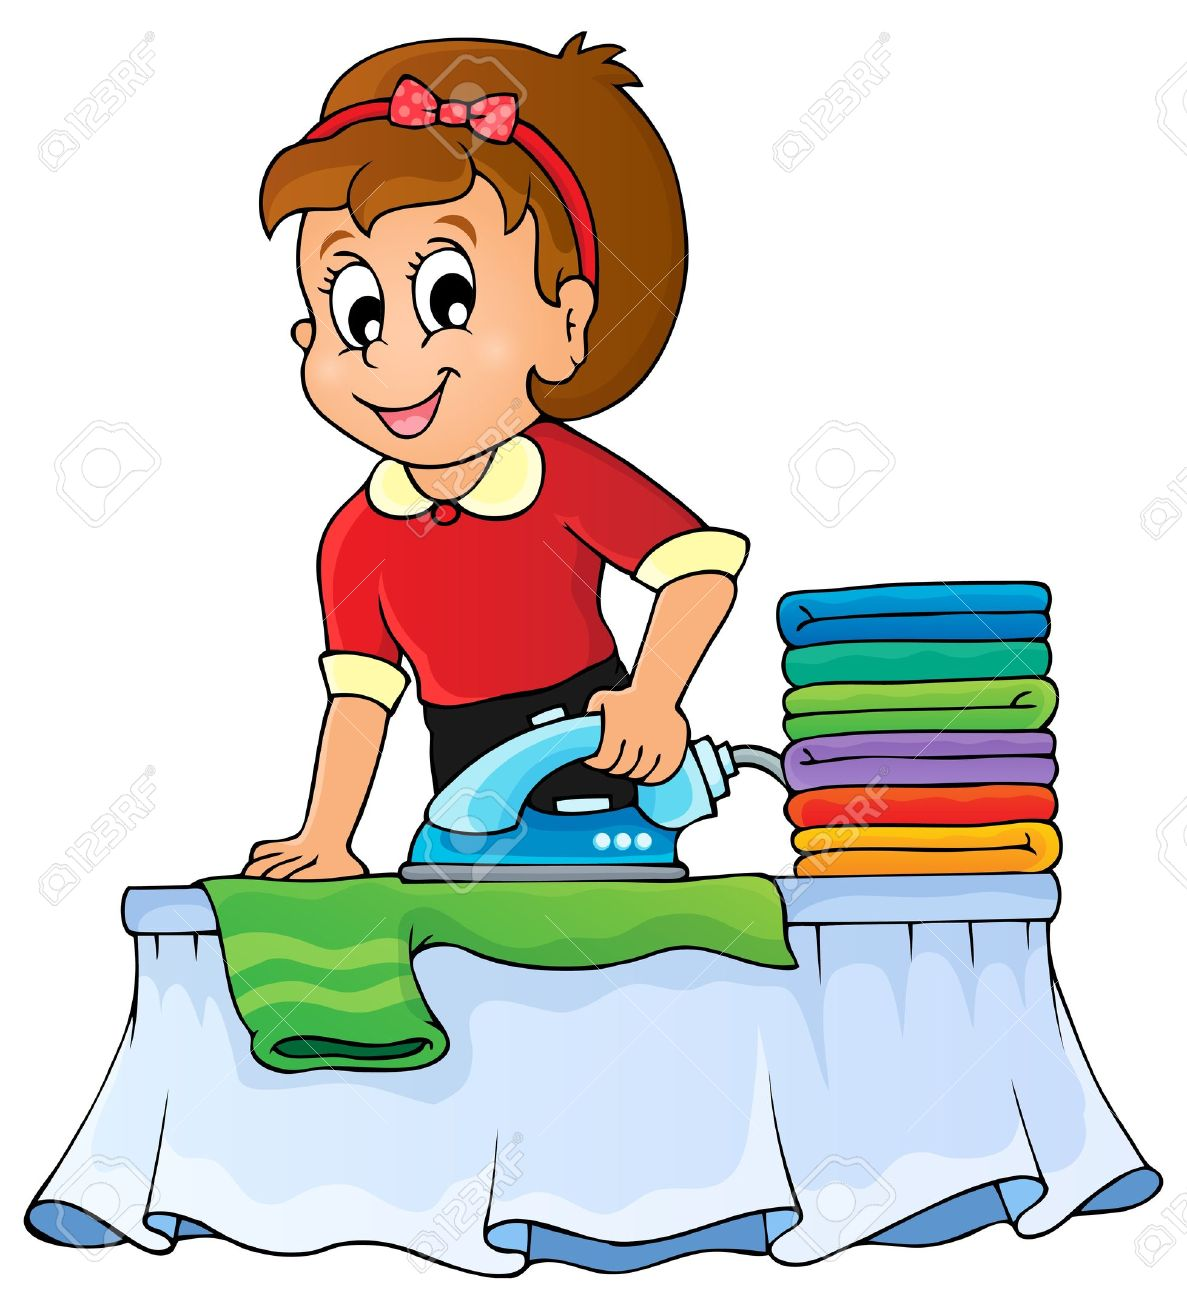 Ironing clothes clipart 3 » Clipart Station.